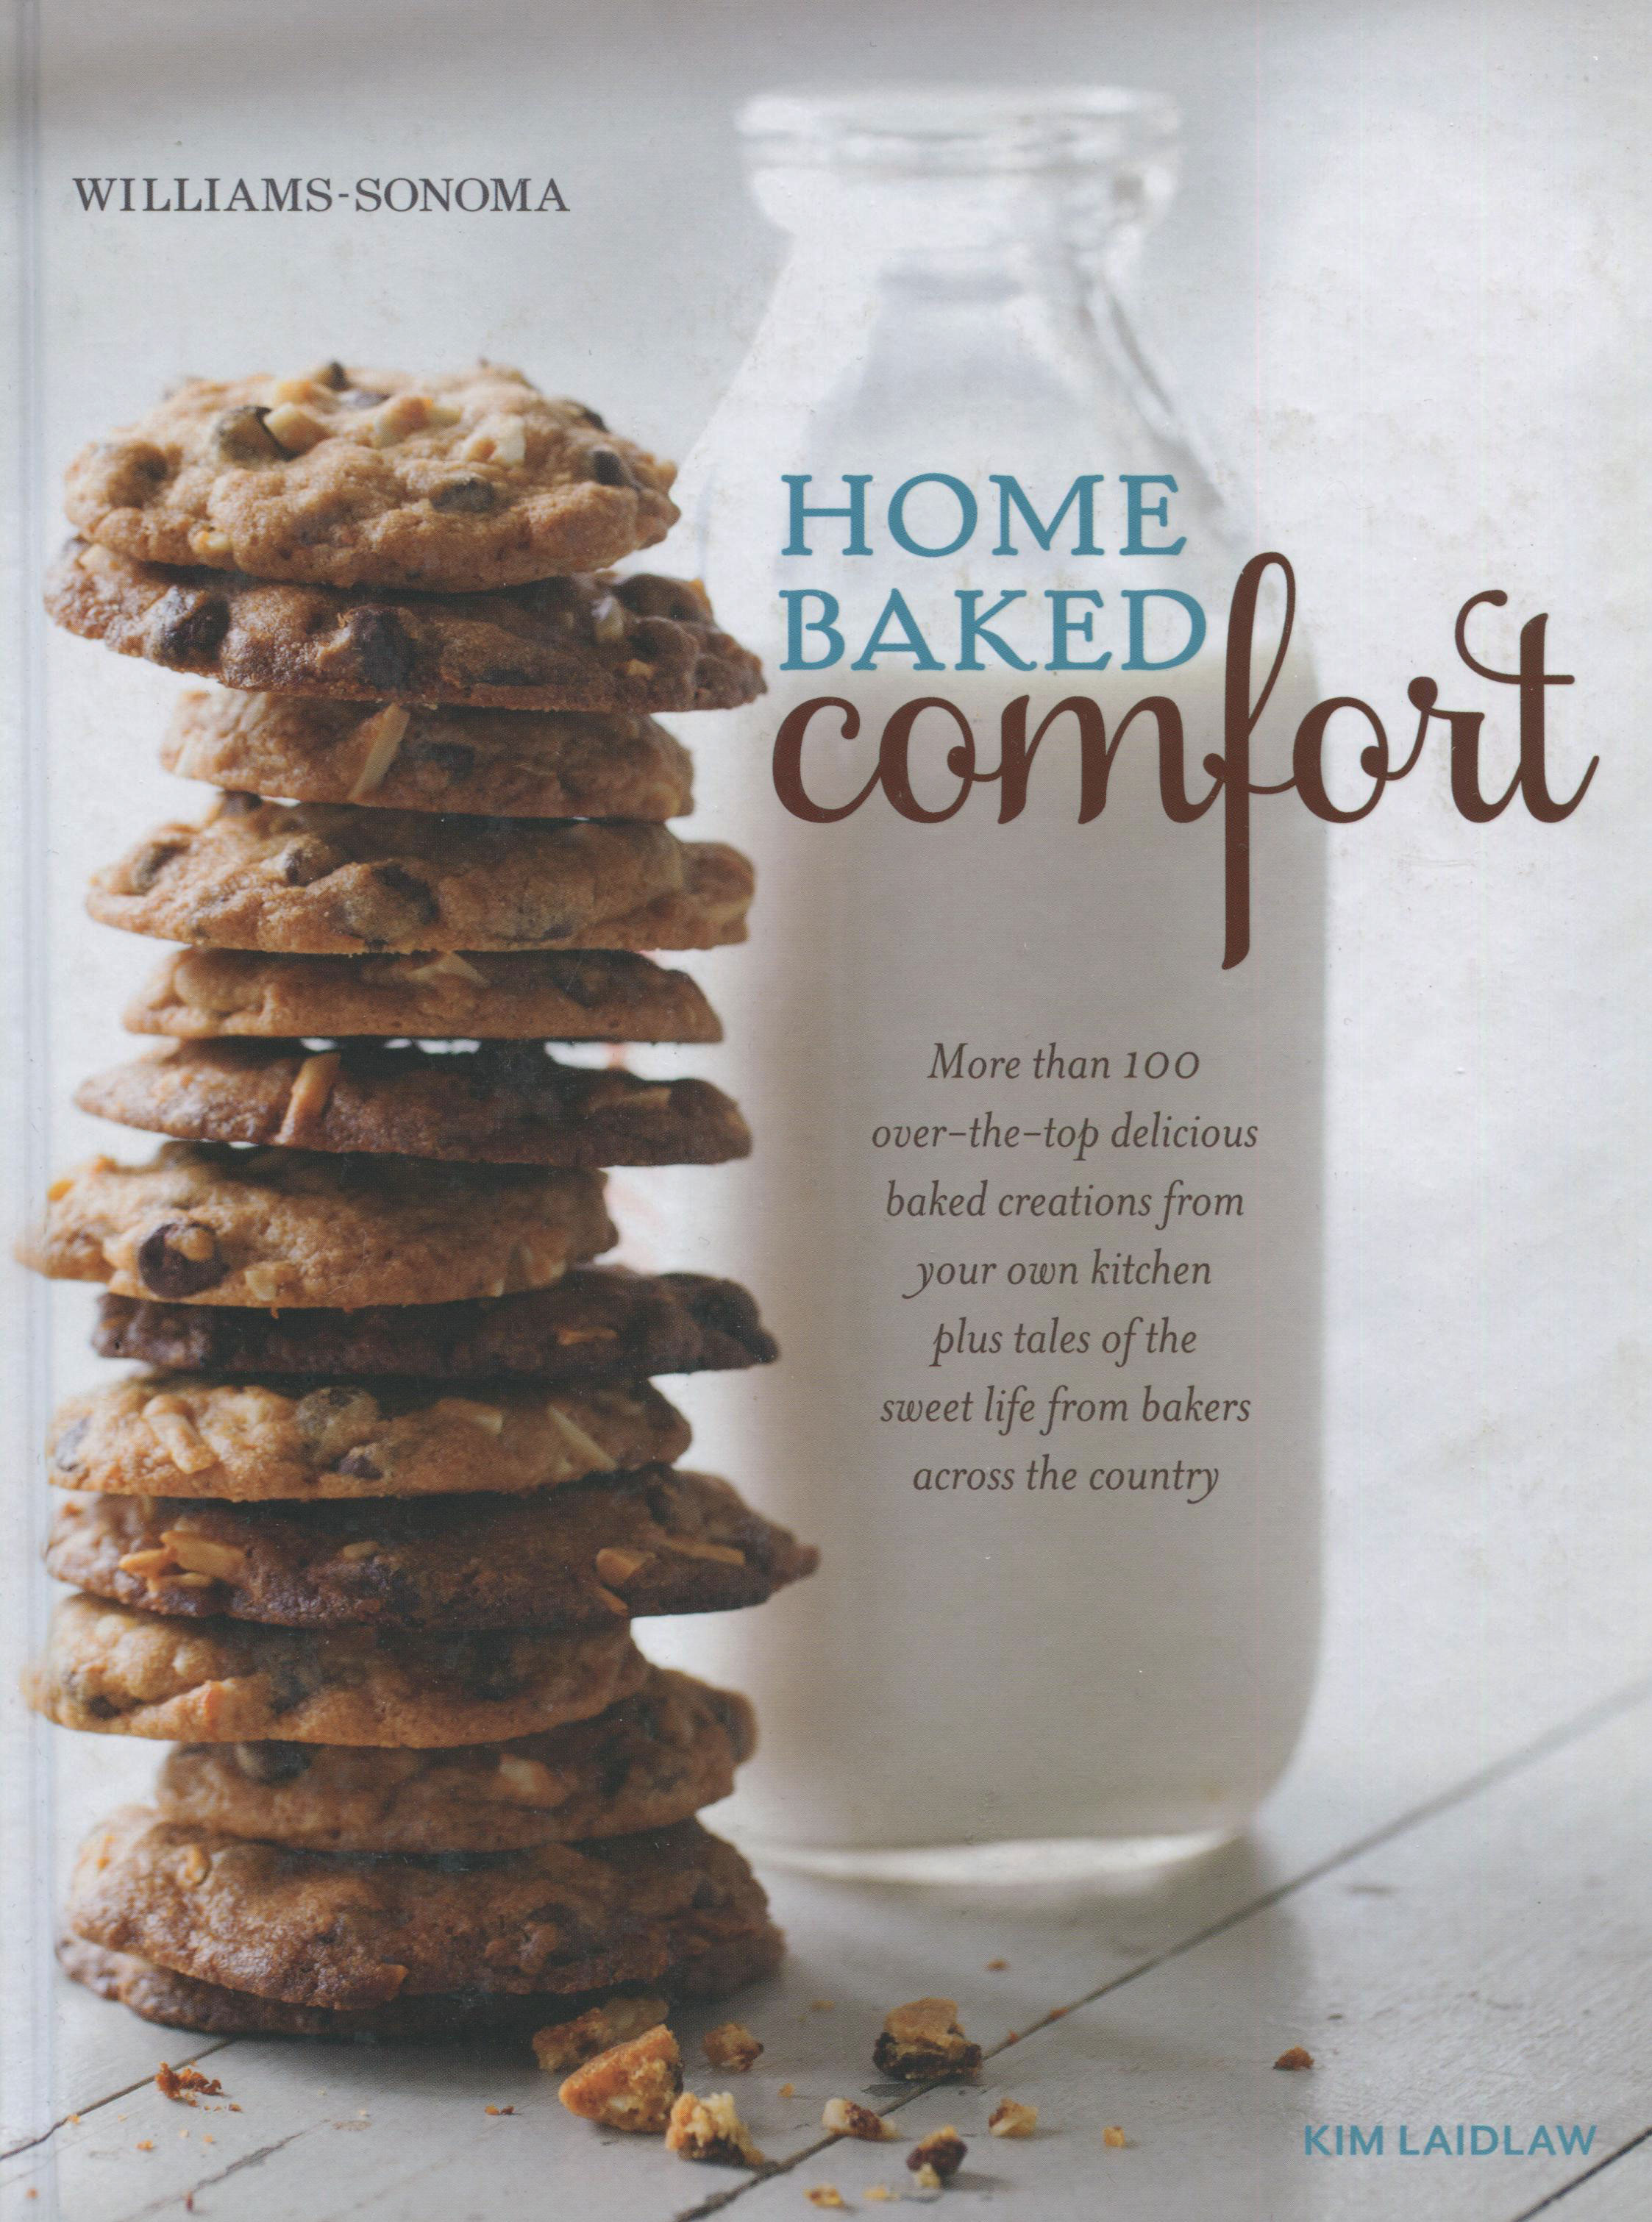 TBT Cookbook Review: Home Baked Comfort by Kim Laidlaw from Williams-Sonoma